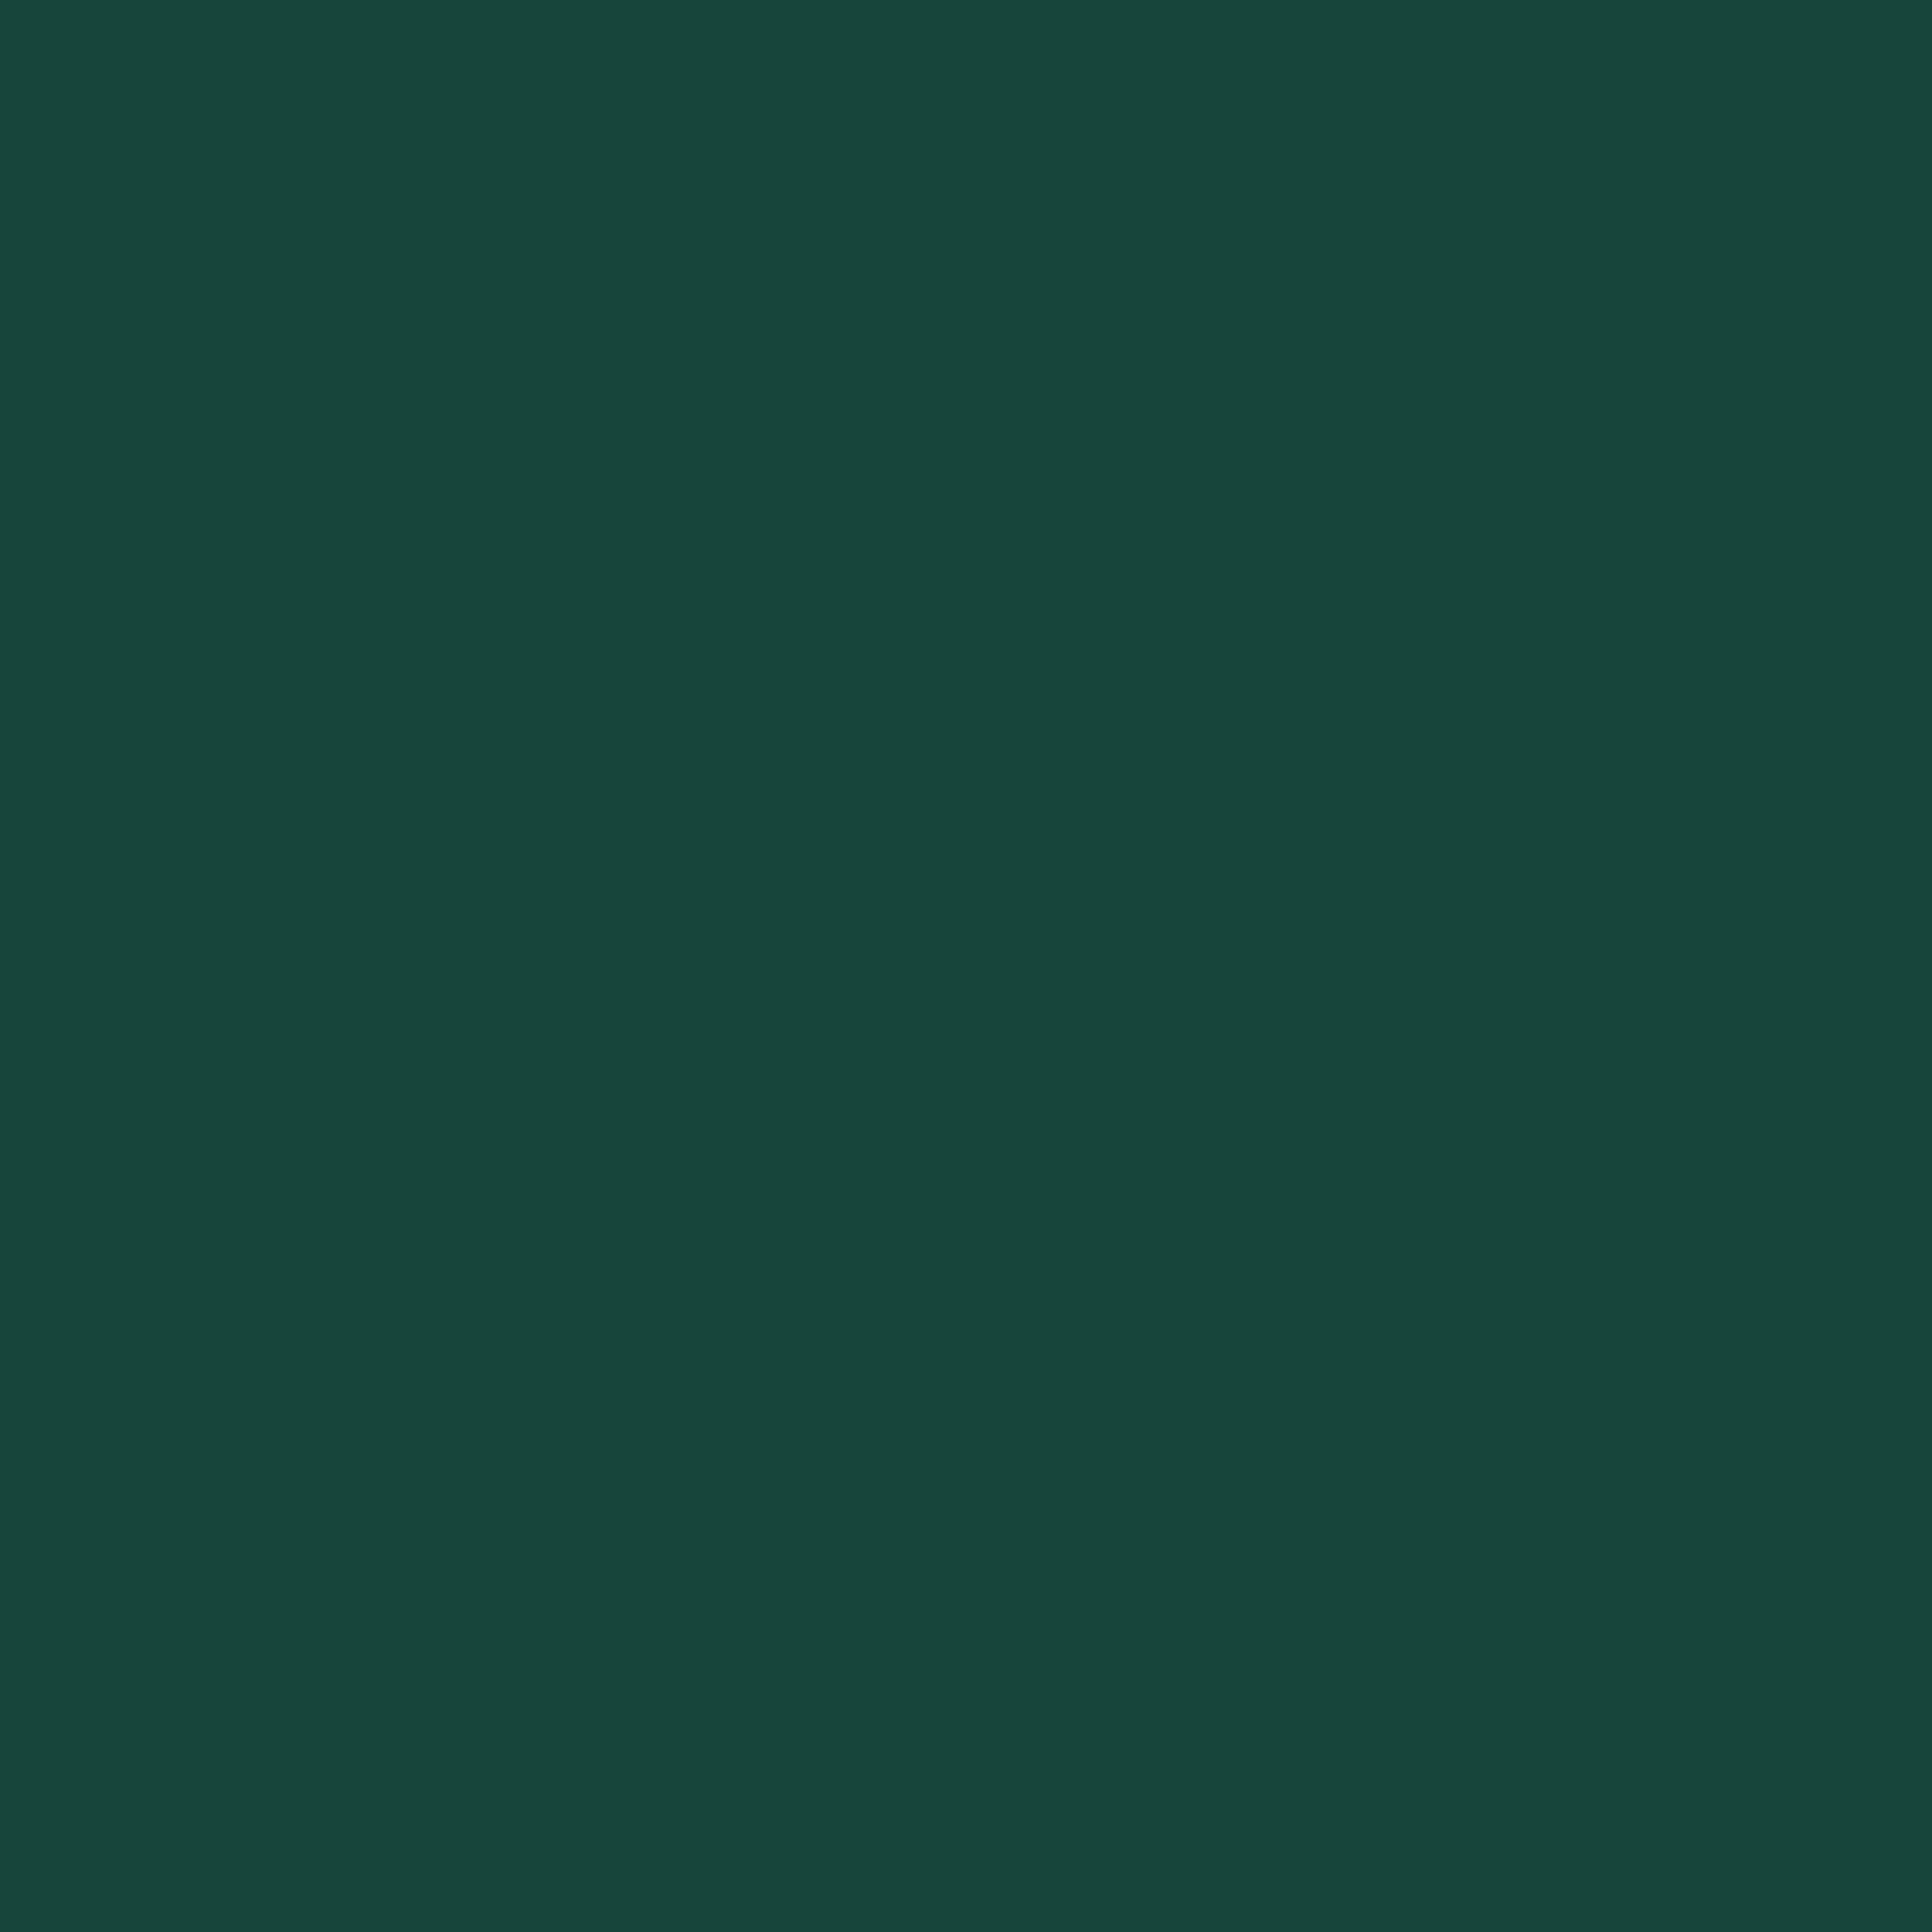 2732x2732 MSU Green Solid Color Background